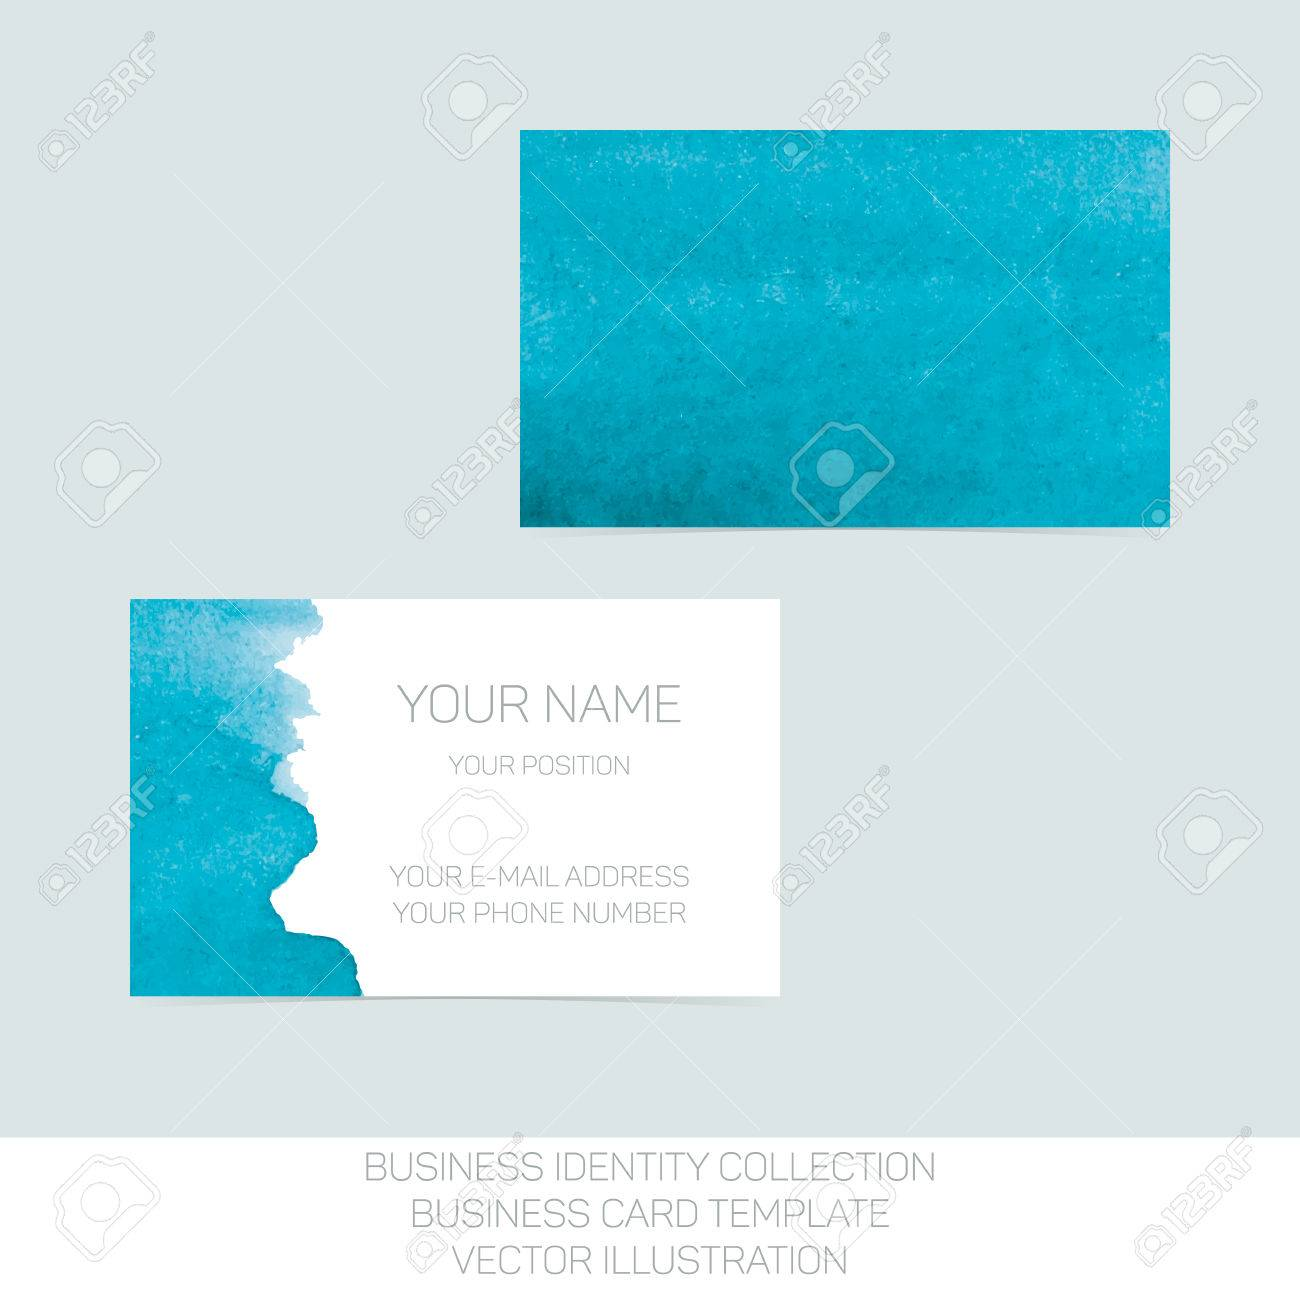 Business identity collection turquoise teal watercolor front business identity collection turquoise teal watercolor front and back sides for business card template reheart Images